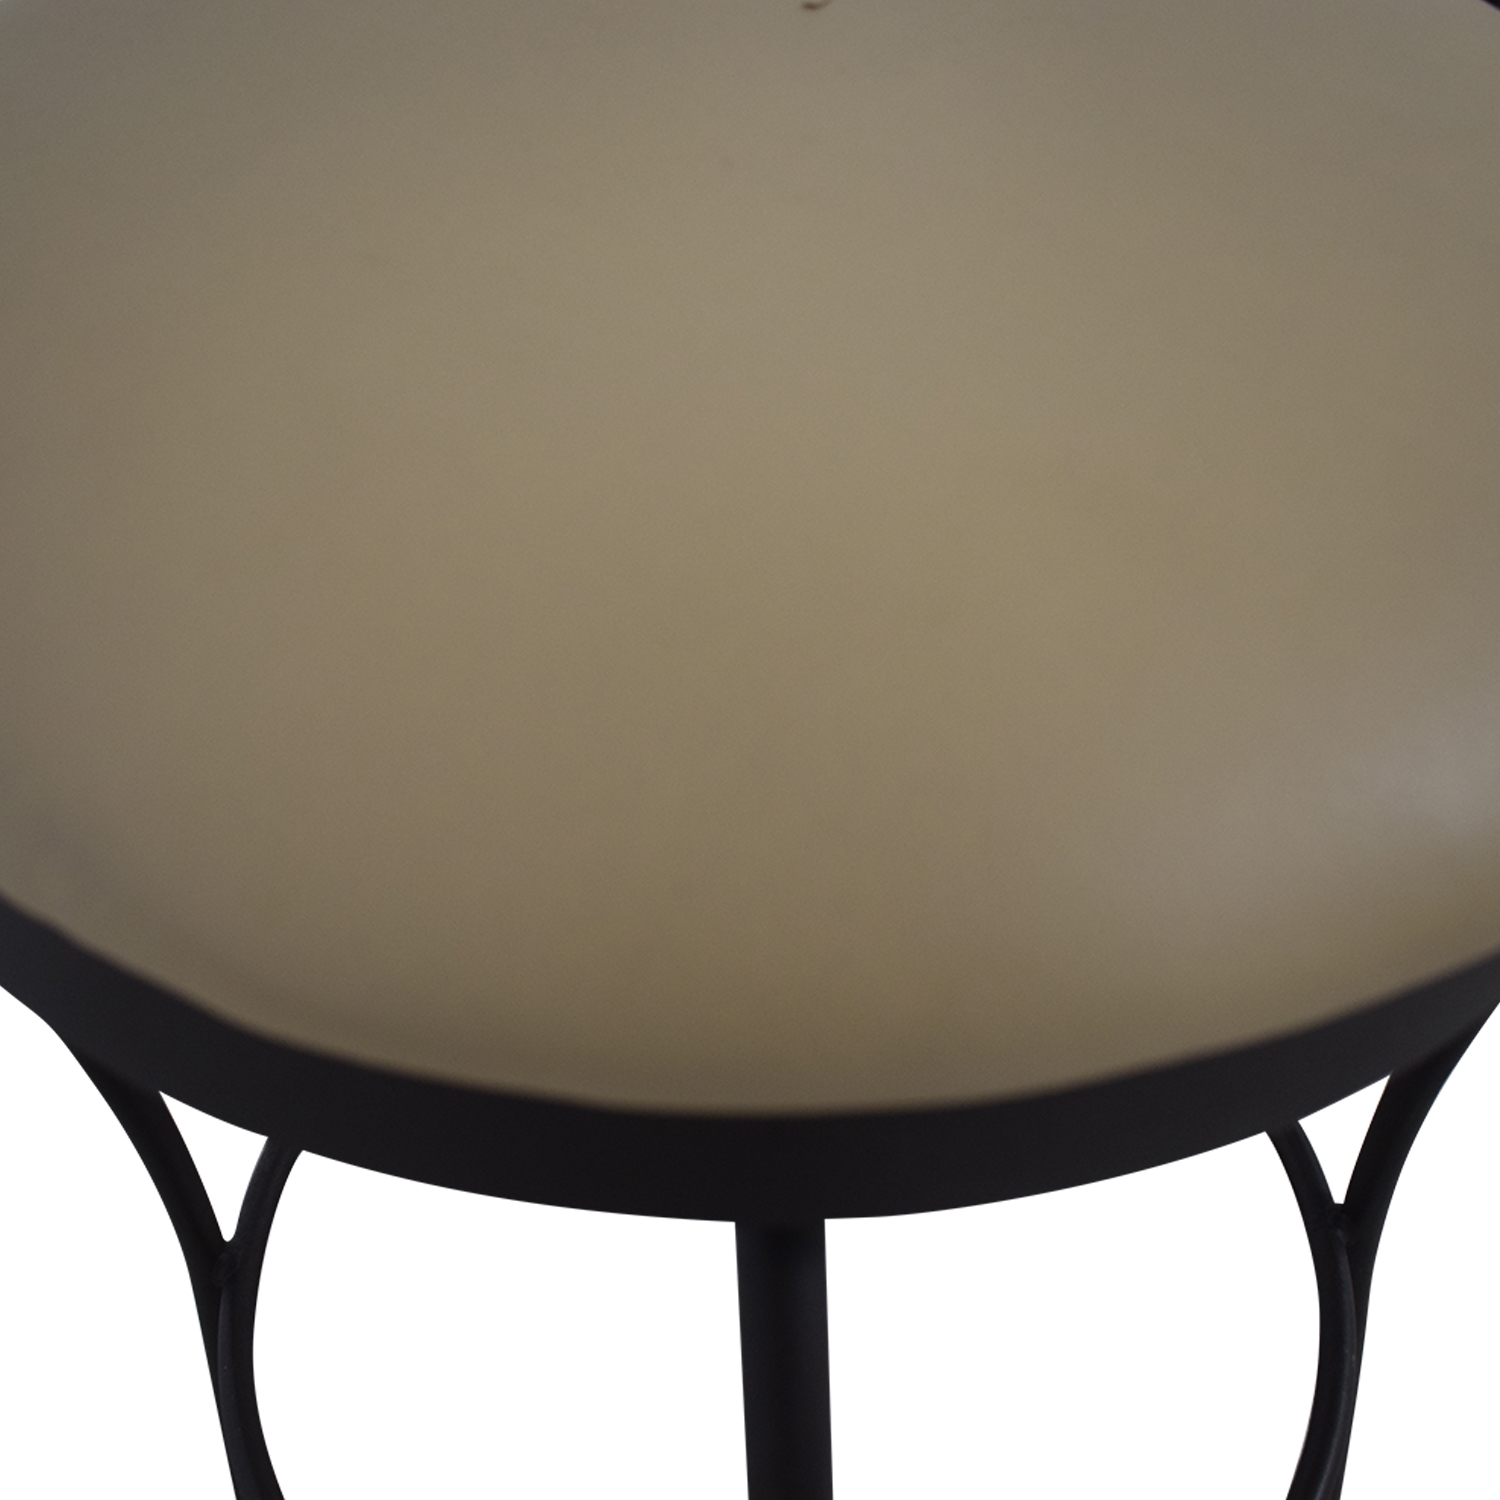 Brown Swivel Bar Stools for sale